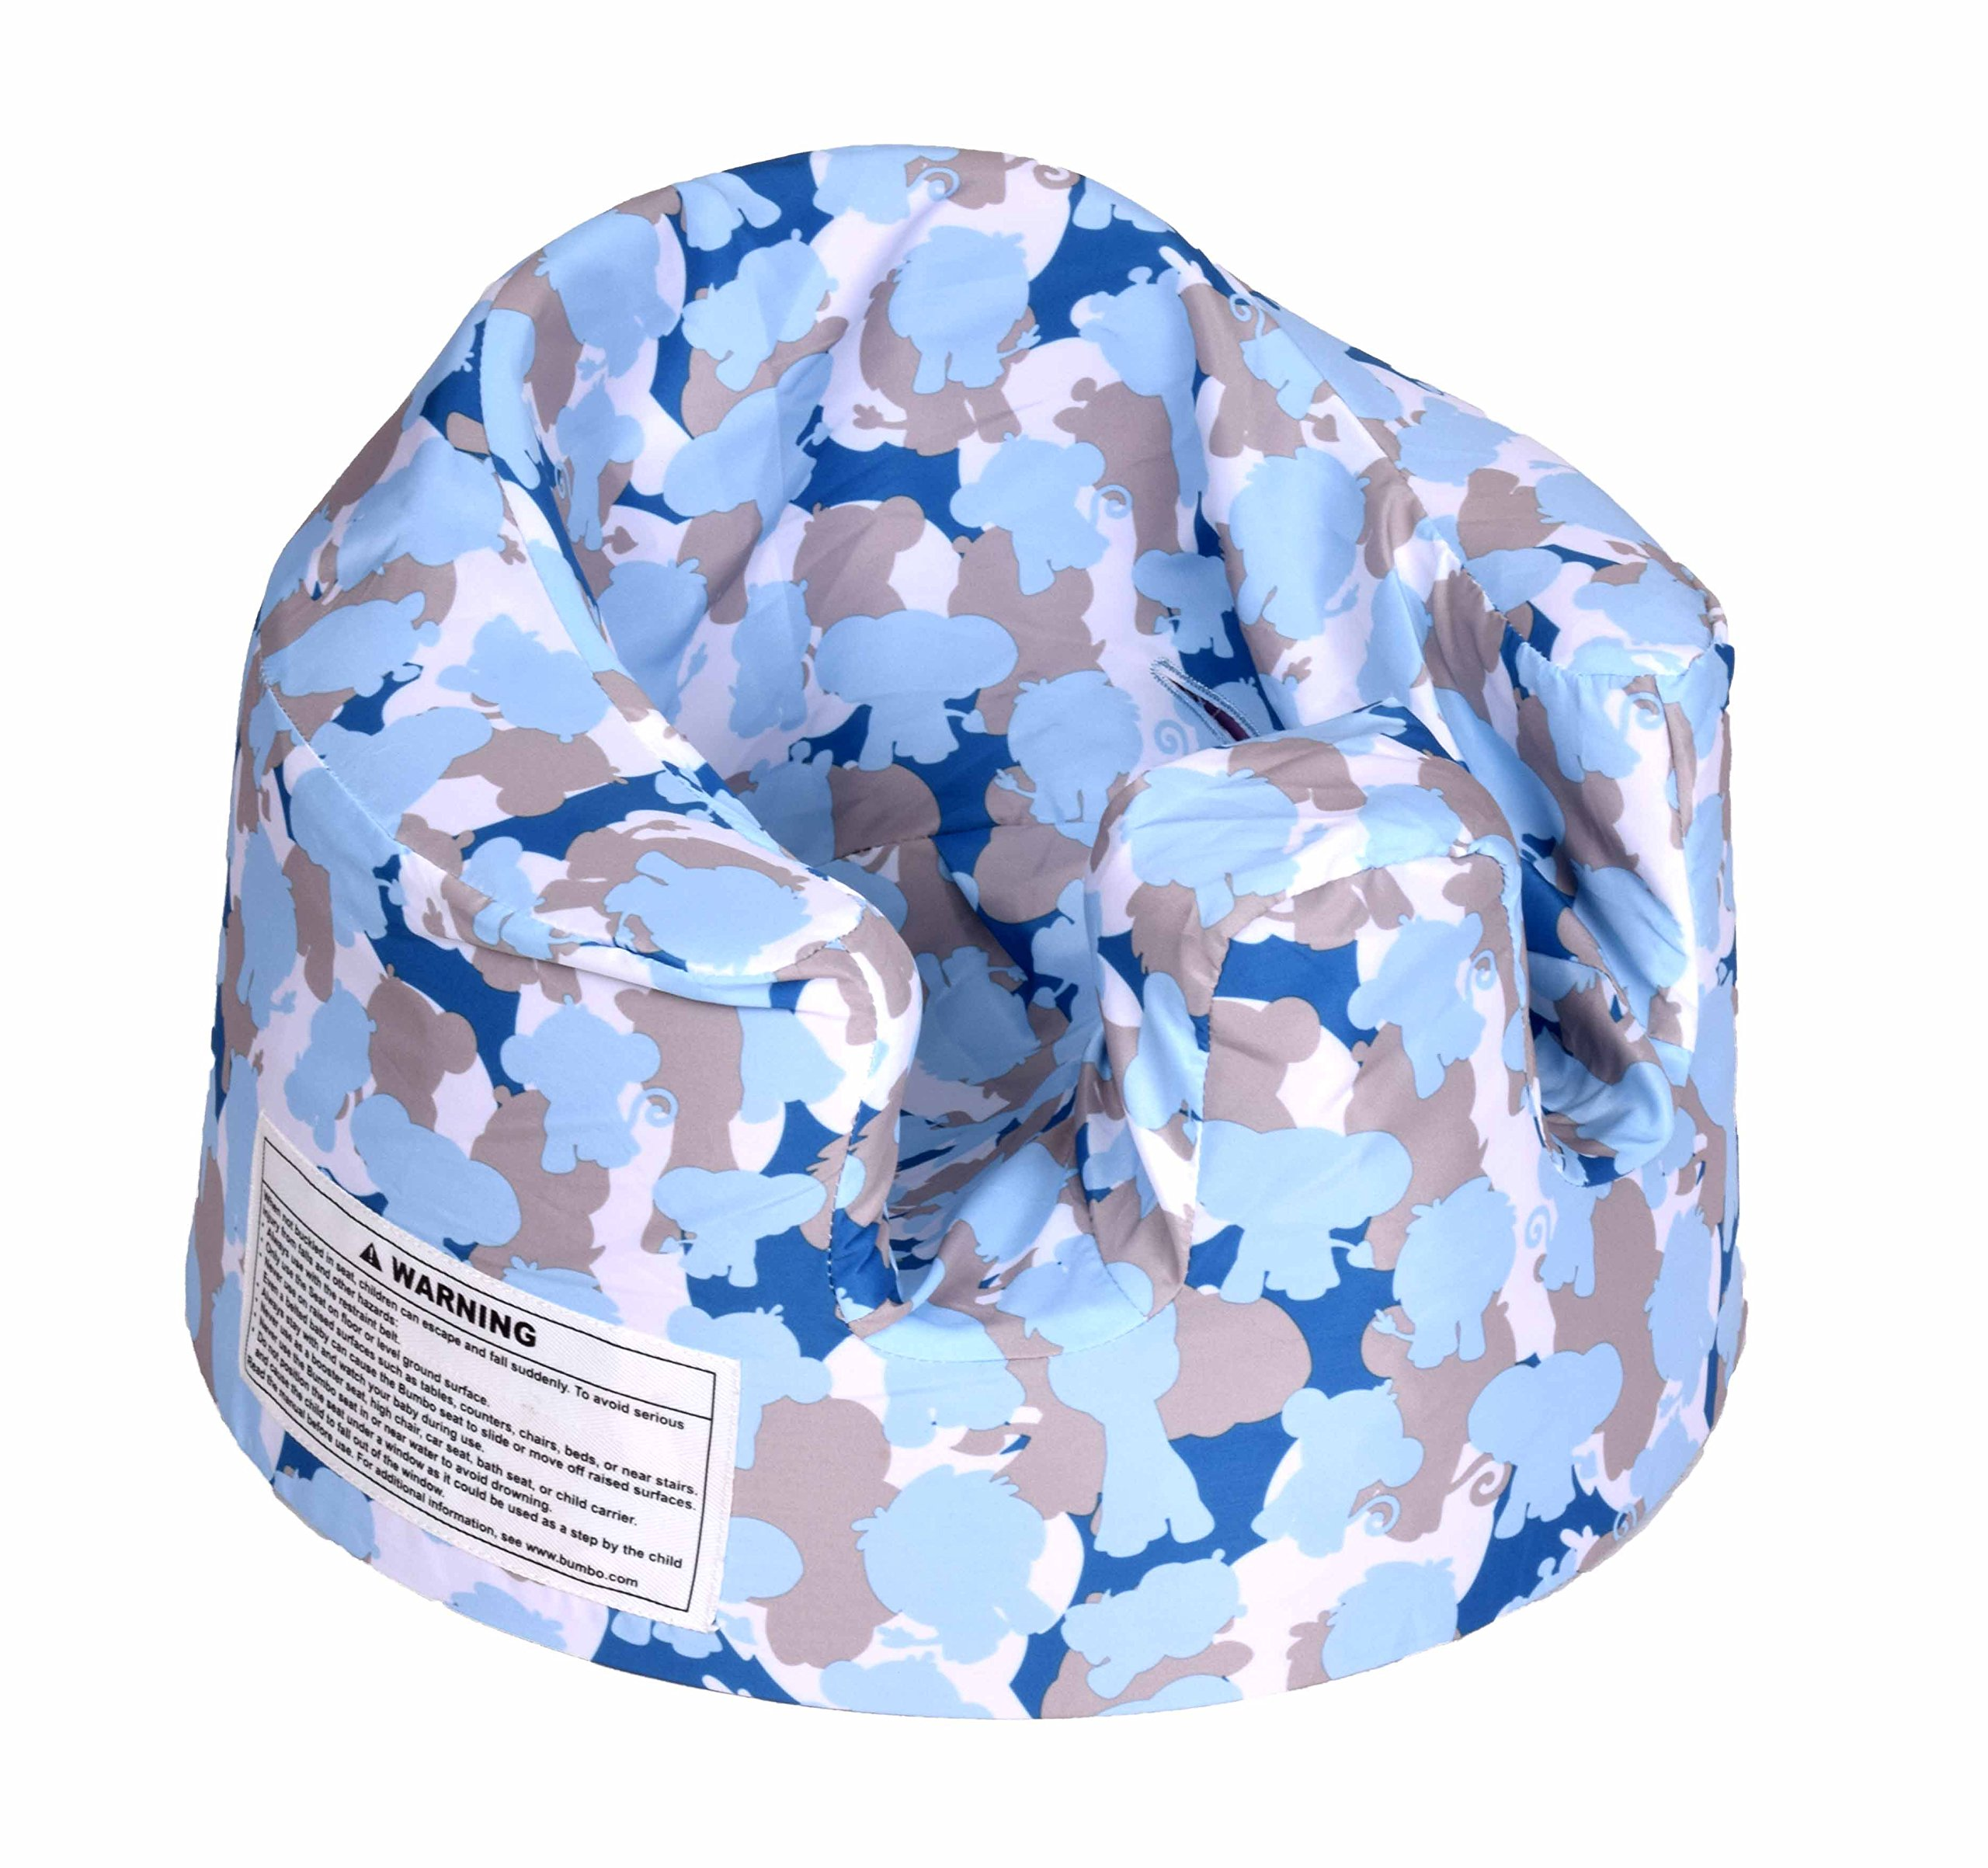 Bumbo Baby Support Floor Seat Cover - Blue Camouflage NEW ...